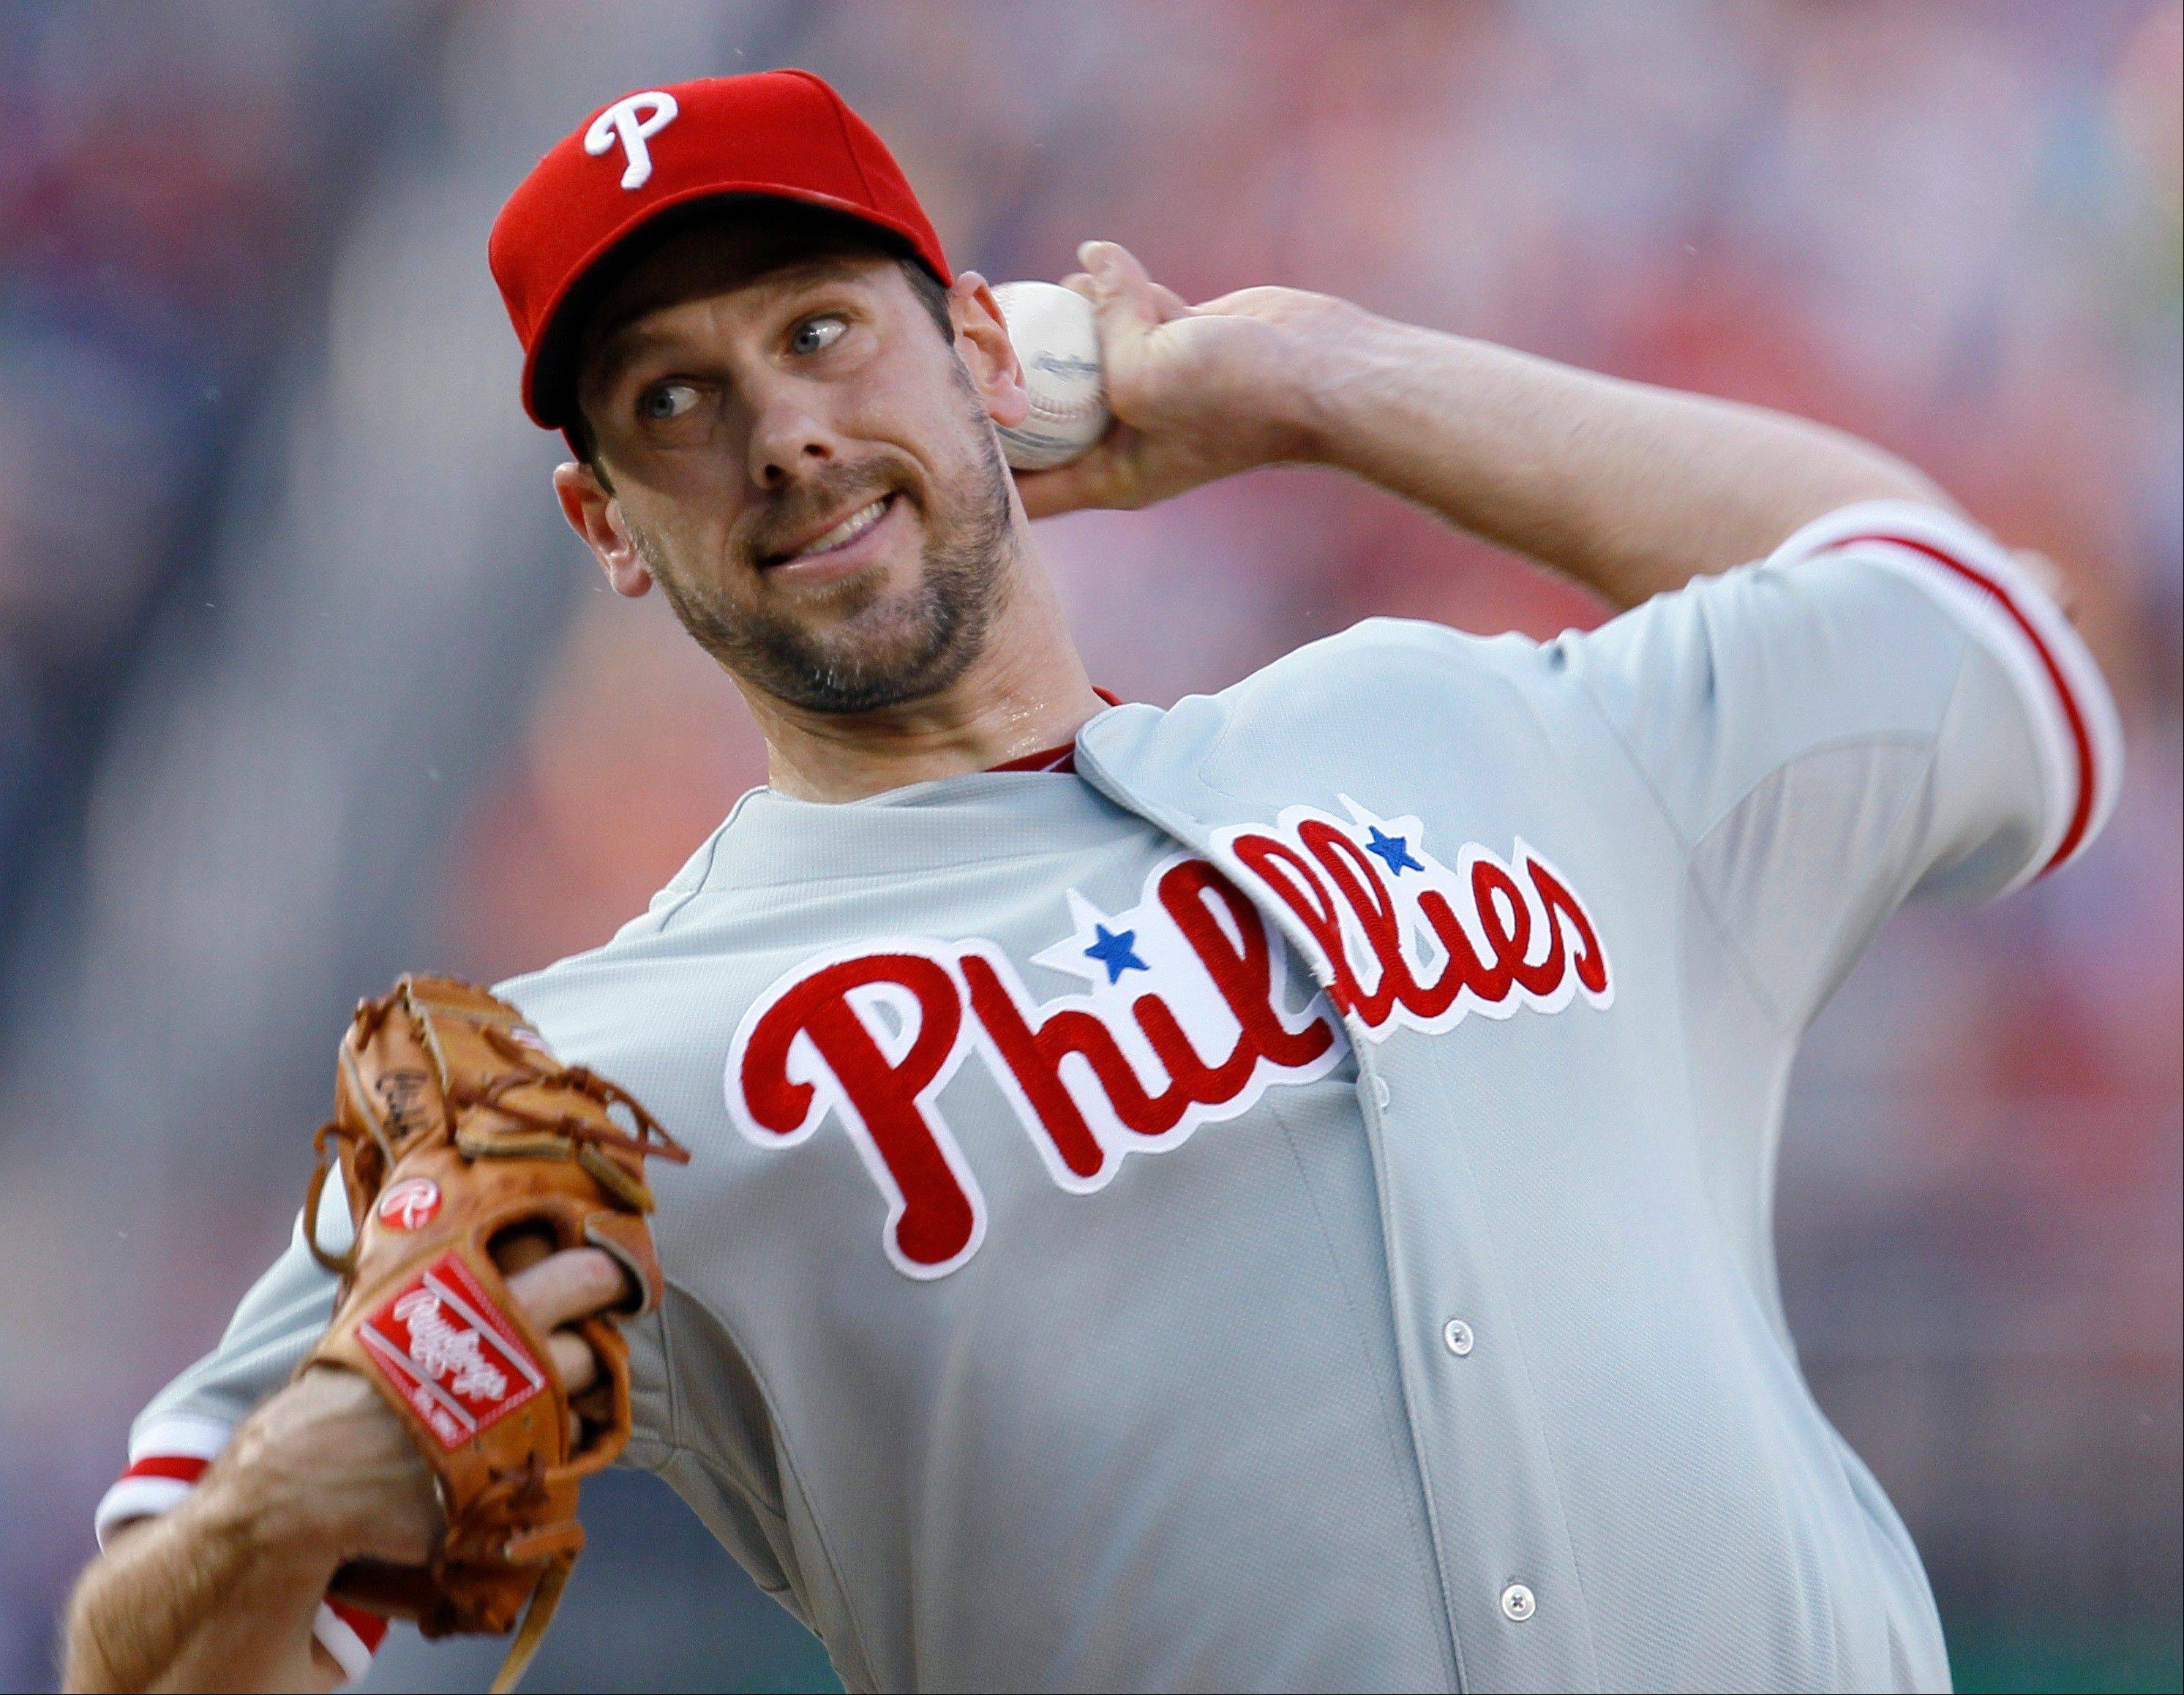 Philadelphia starting pitcher Cliff Lee allowed five hits and one walk and struck out seven in Tuesday's win in Washington.